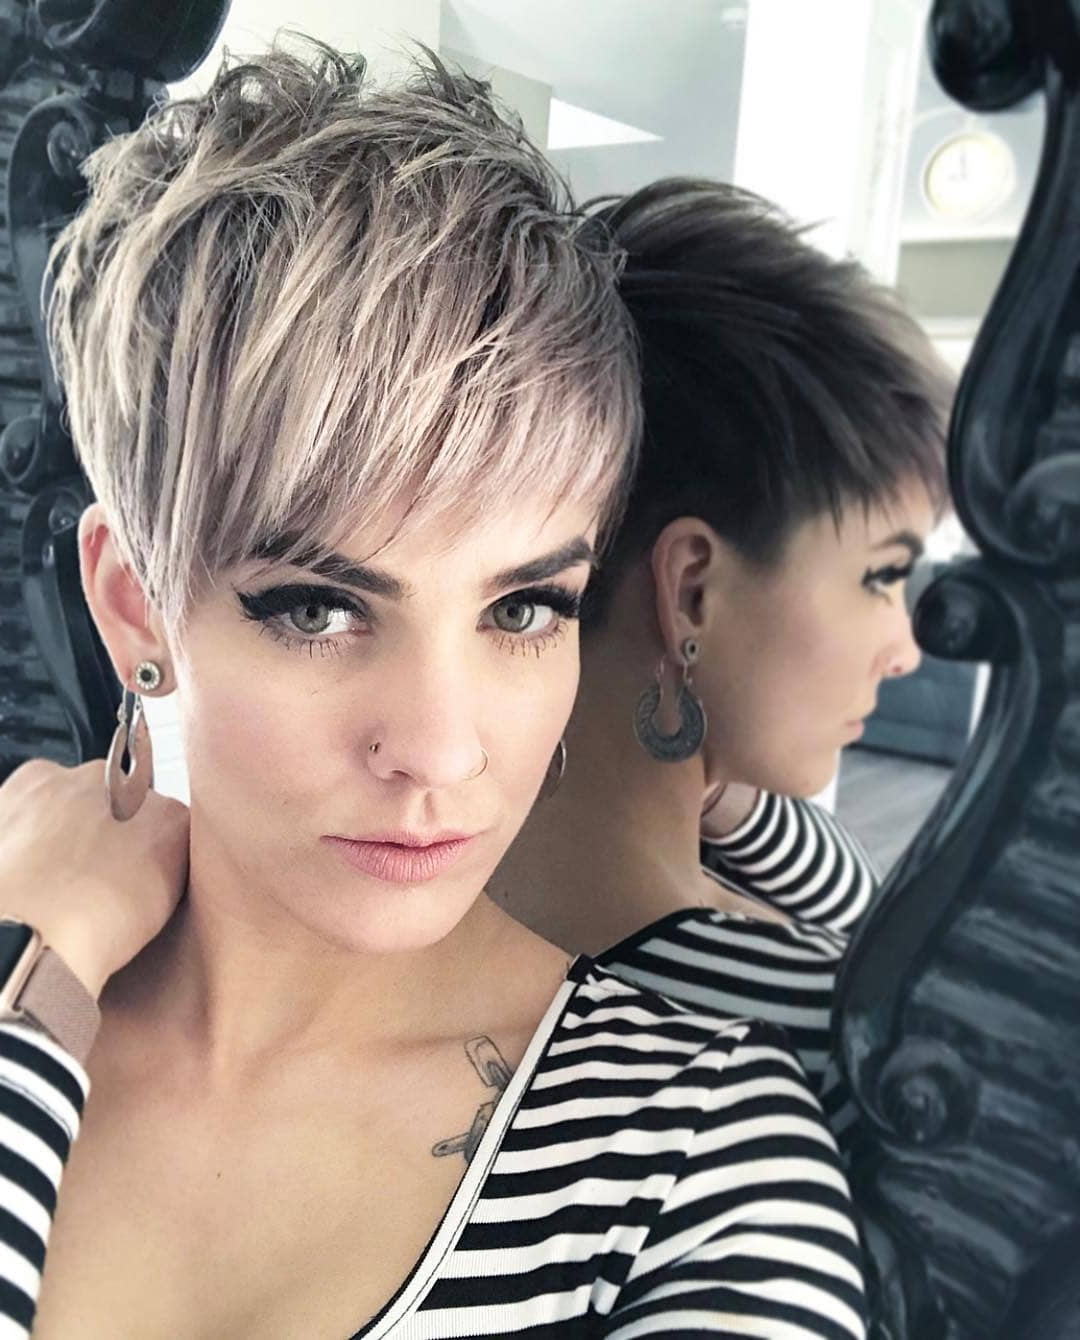 Top 10 Most Flattering Pixie Haircuts For Women, Short Hair Styles 2019 With Pixie Layered Short Haircuts (View 25 of 25)